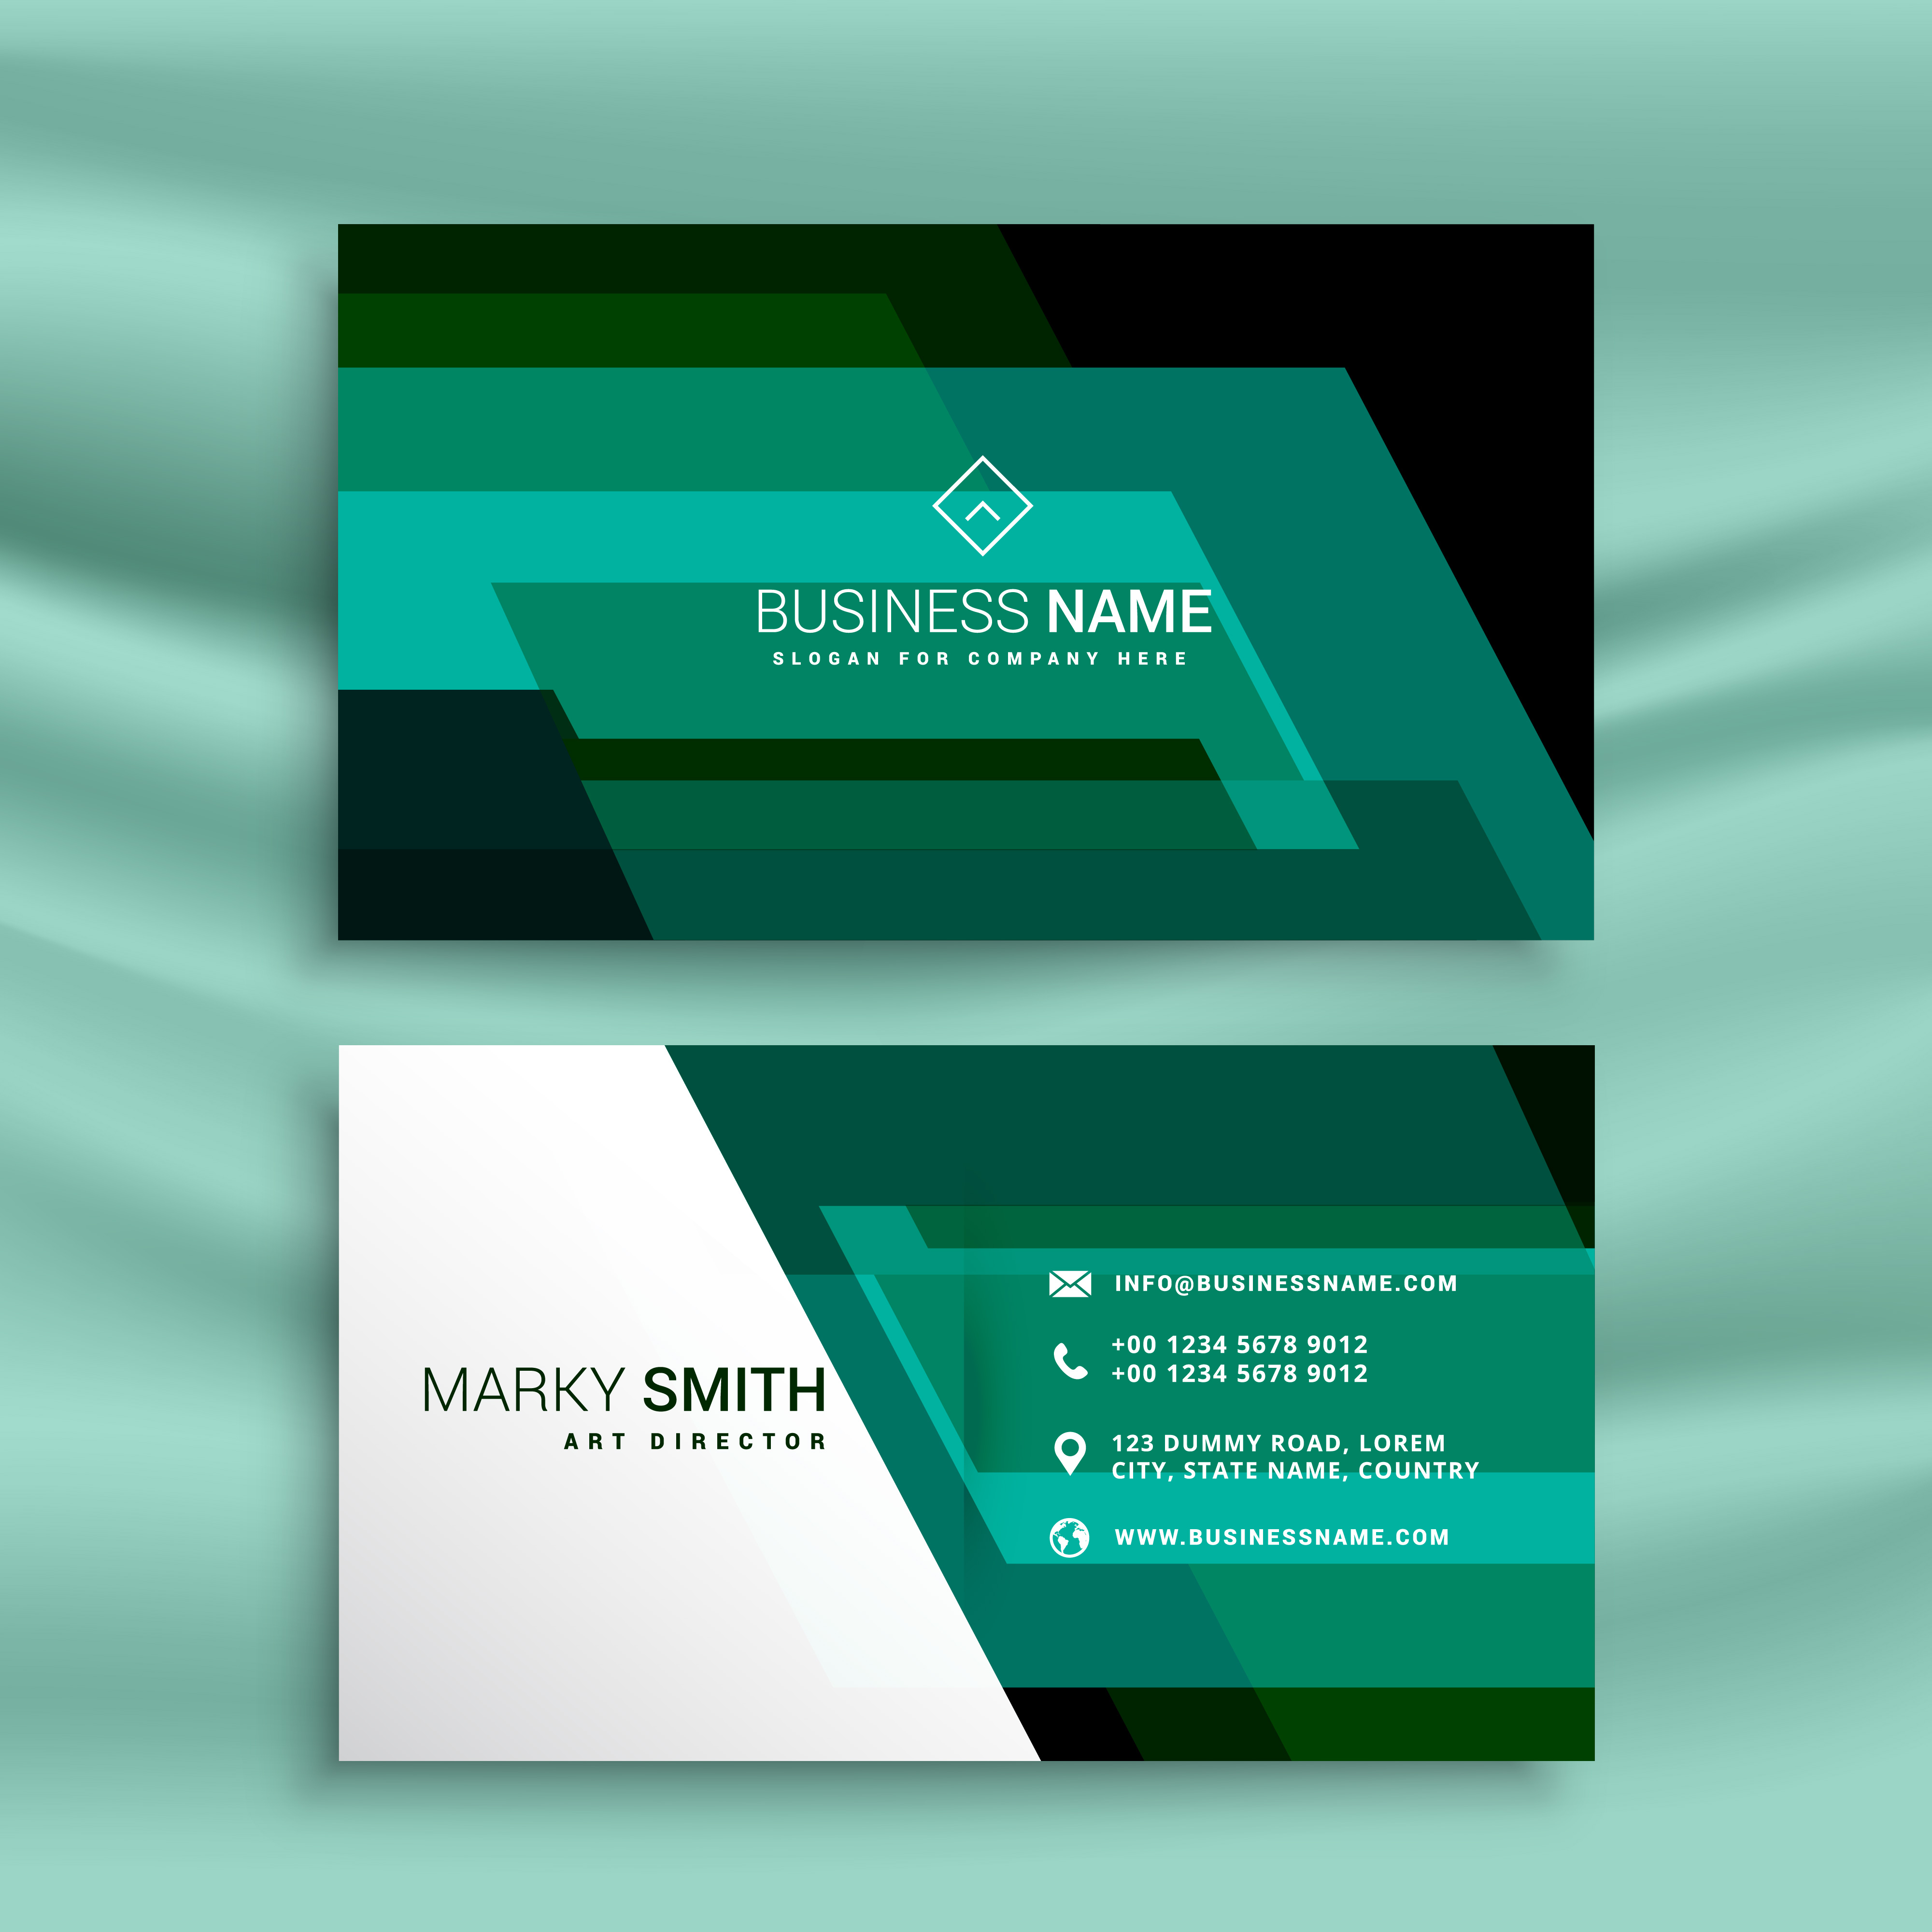 Business Card Layout Template: Abstract Green Business Card Design Template